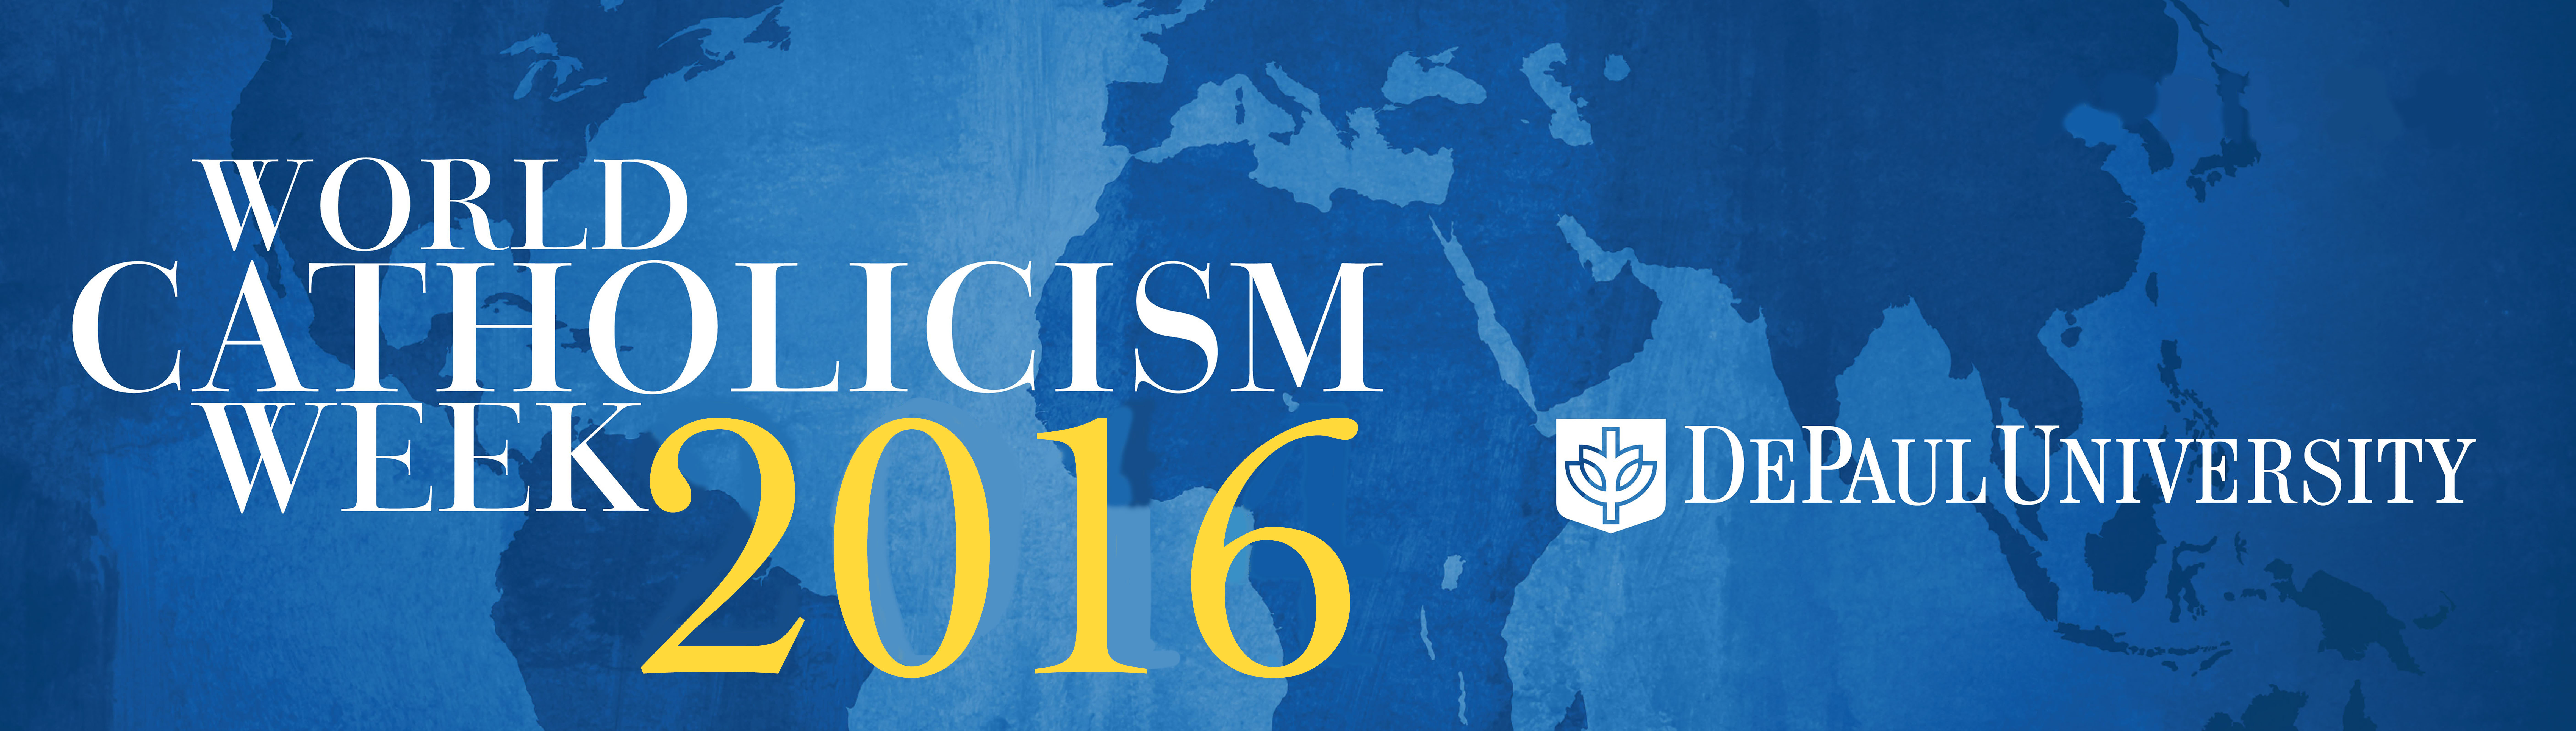 World Catholicism Week 2016